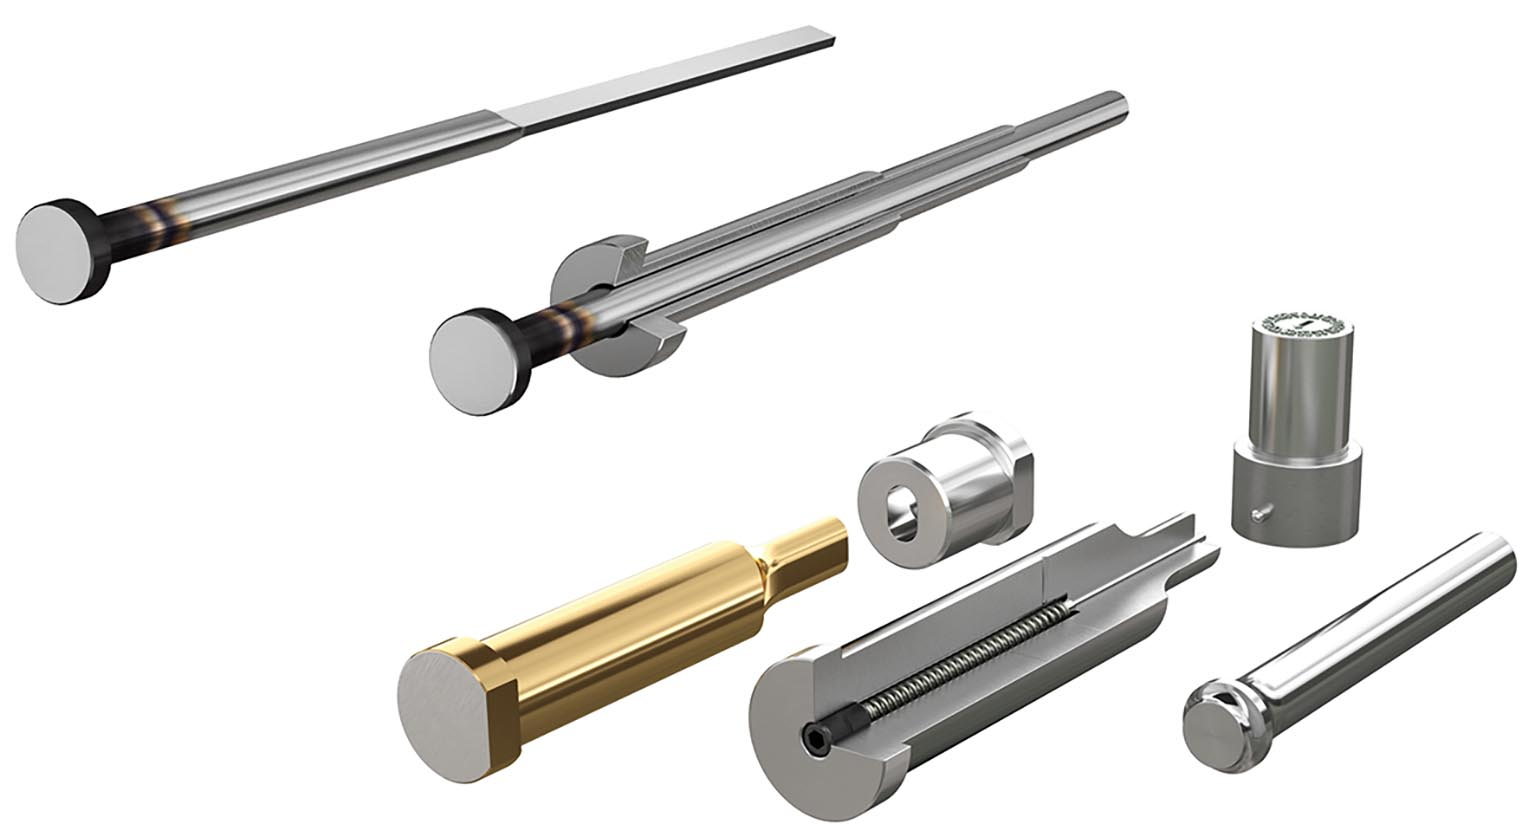 Ejector Elements